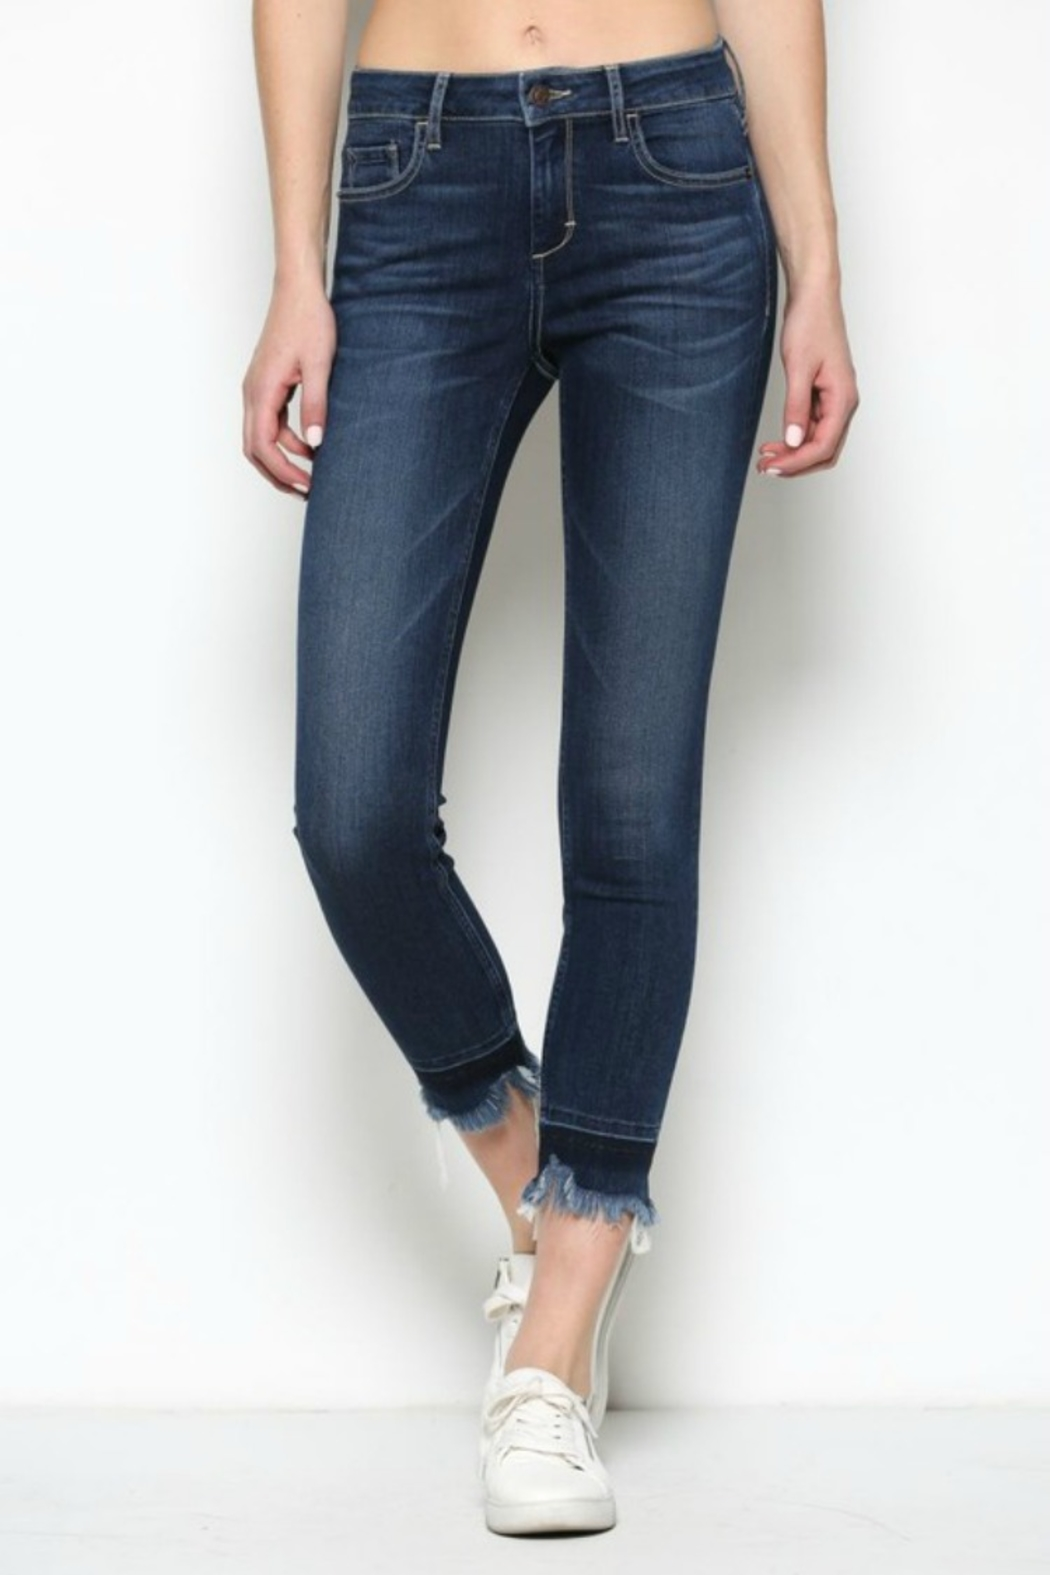 Hidden Jeans HD7452-DK  Dark Wash Released Frayed Hem Skinny - Main Image